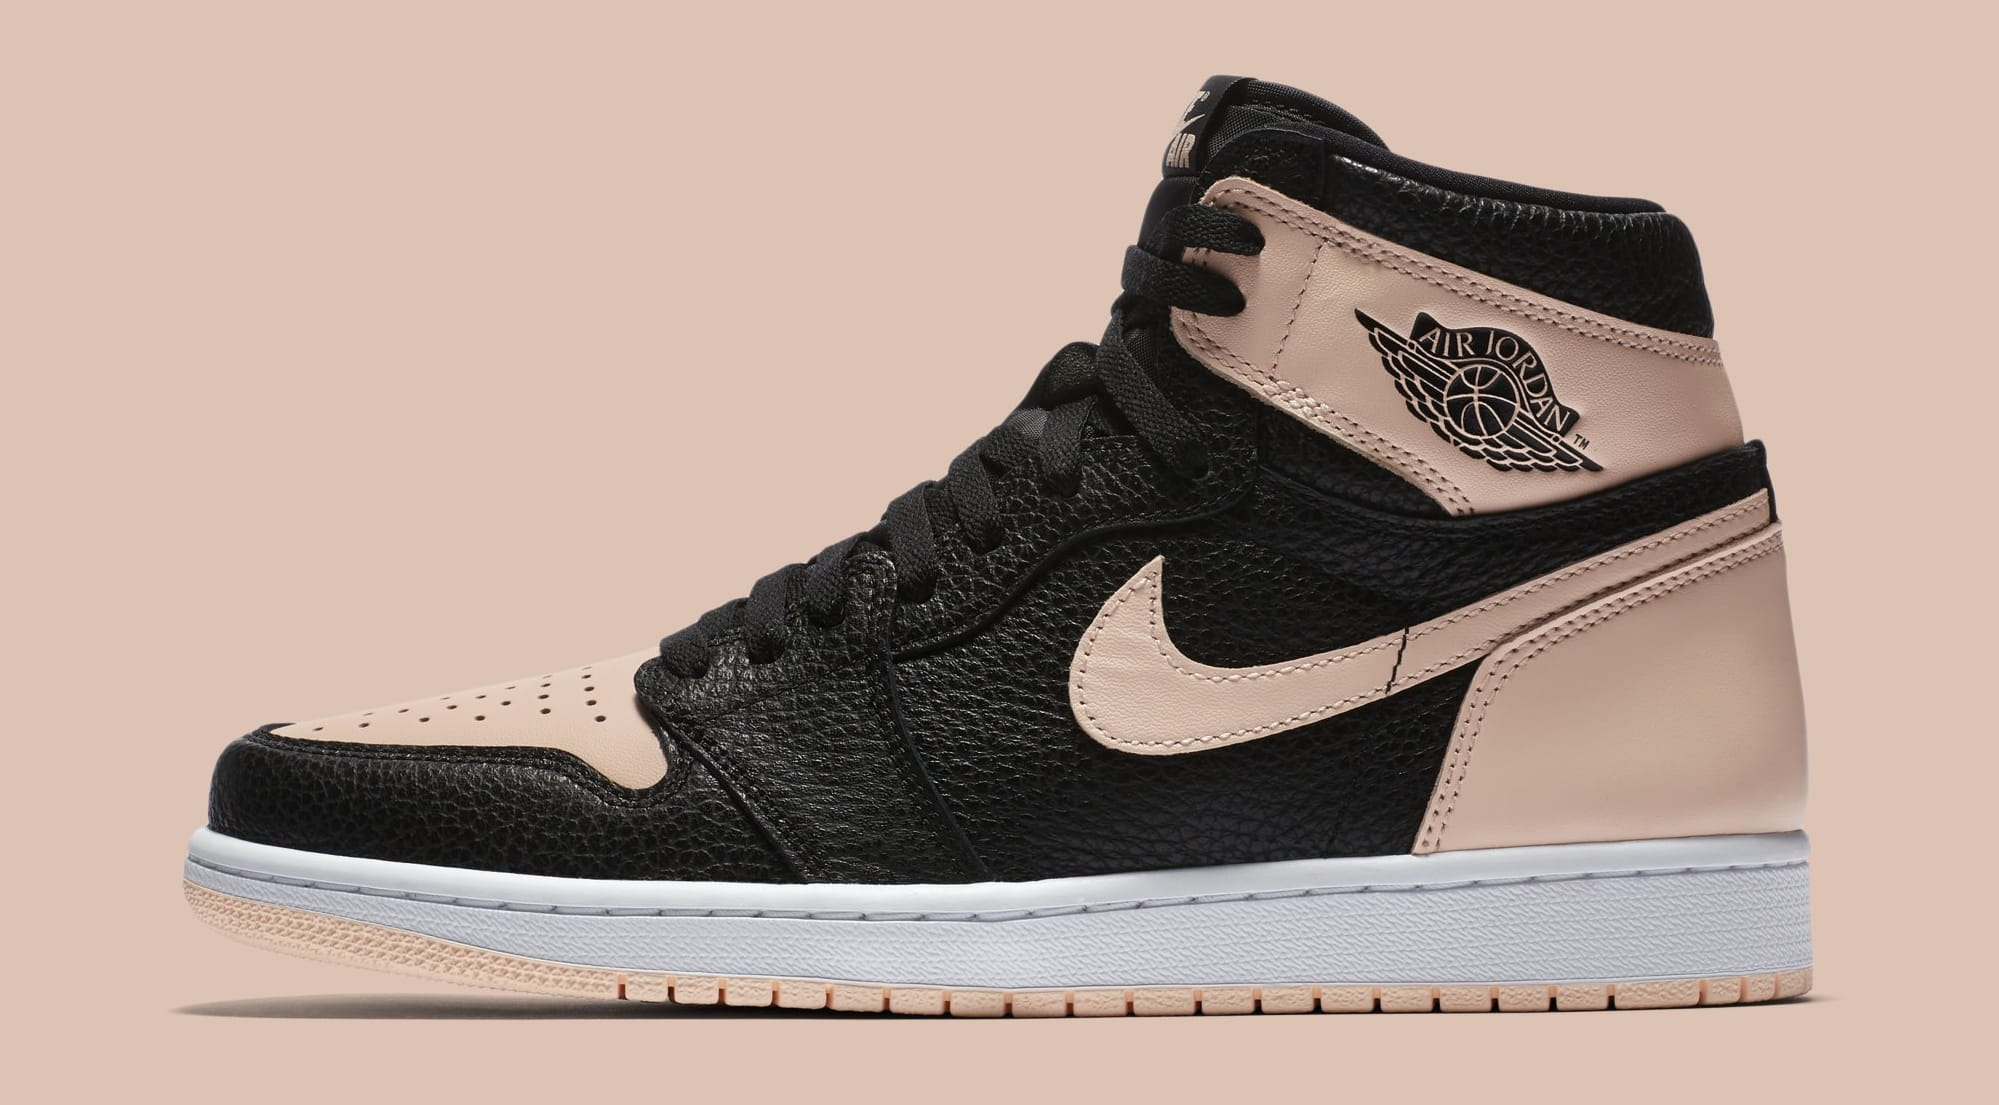 Air Jordan 1 'Crimson Tint' 555088-081 (Lateral)